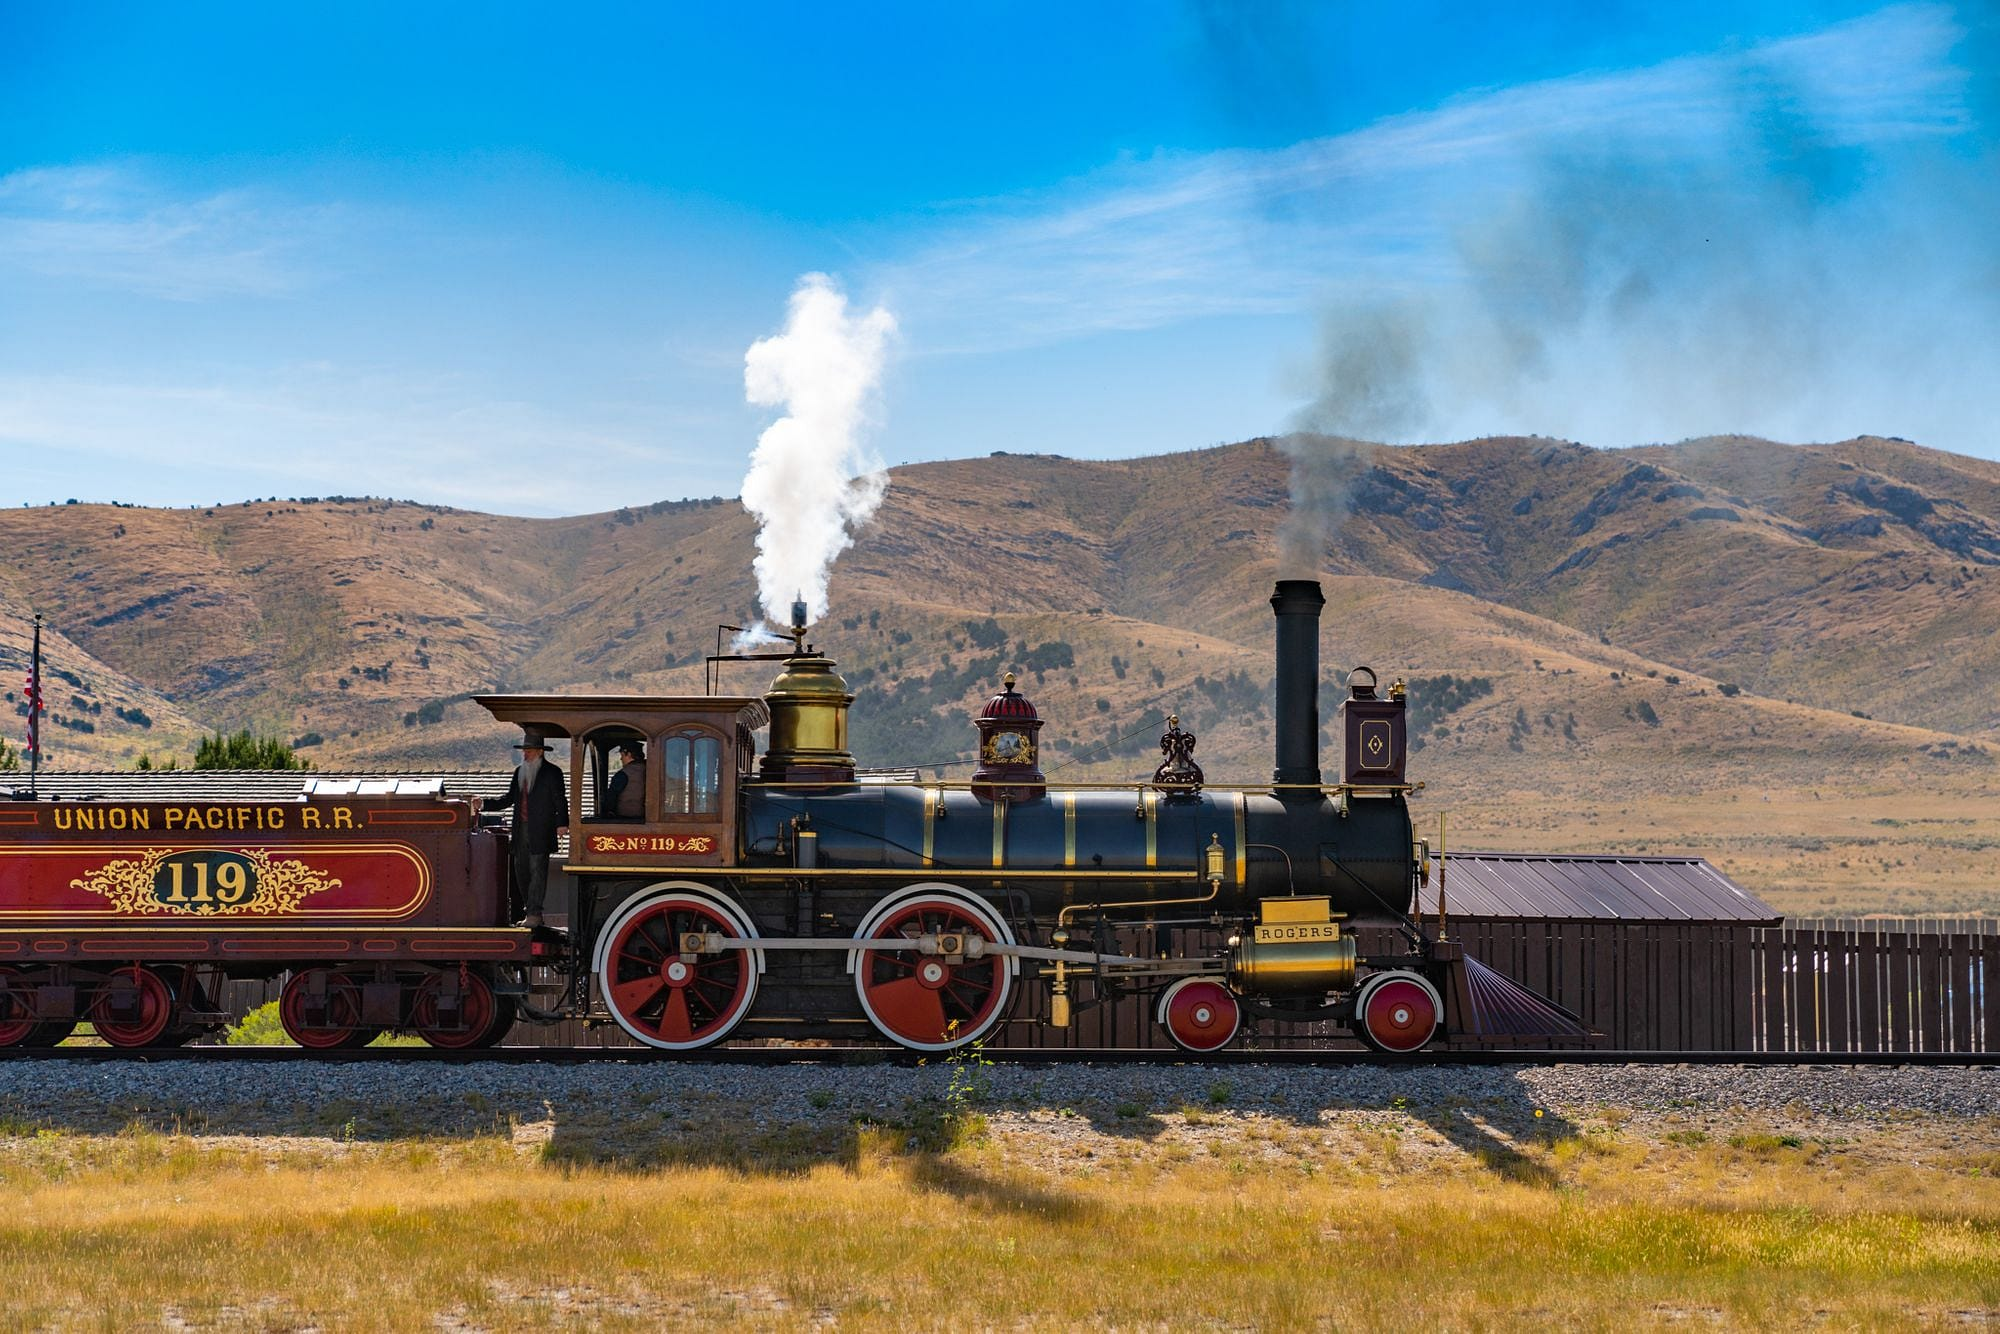 No 119 at Golden Spike